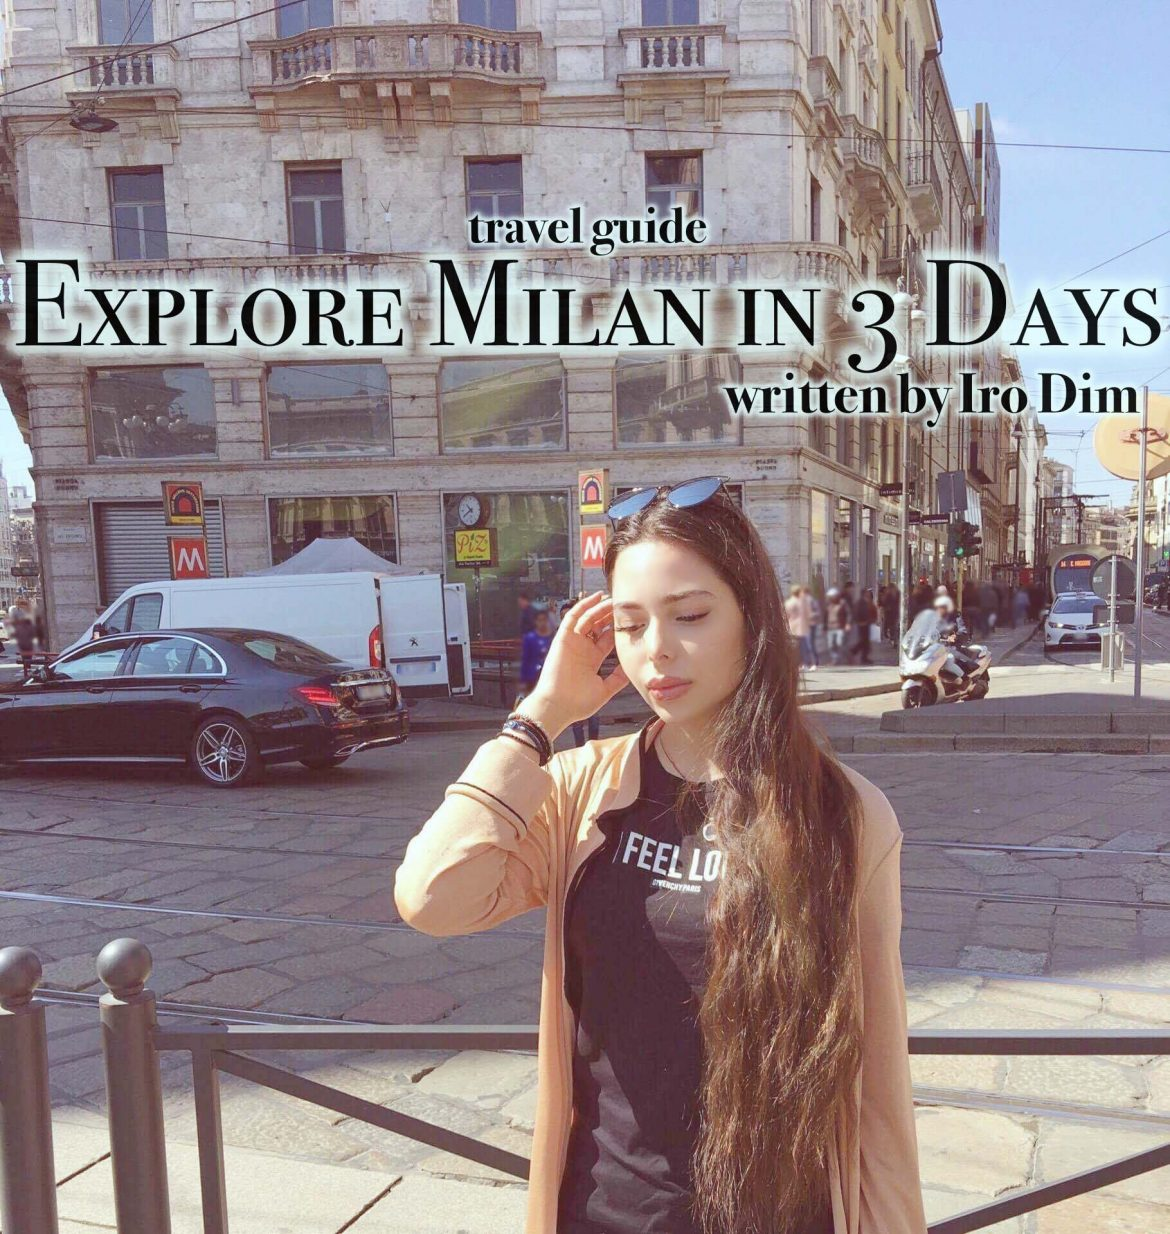 Milan, Explore Milan in Just 3 Days, Visit Milan